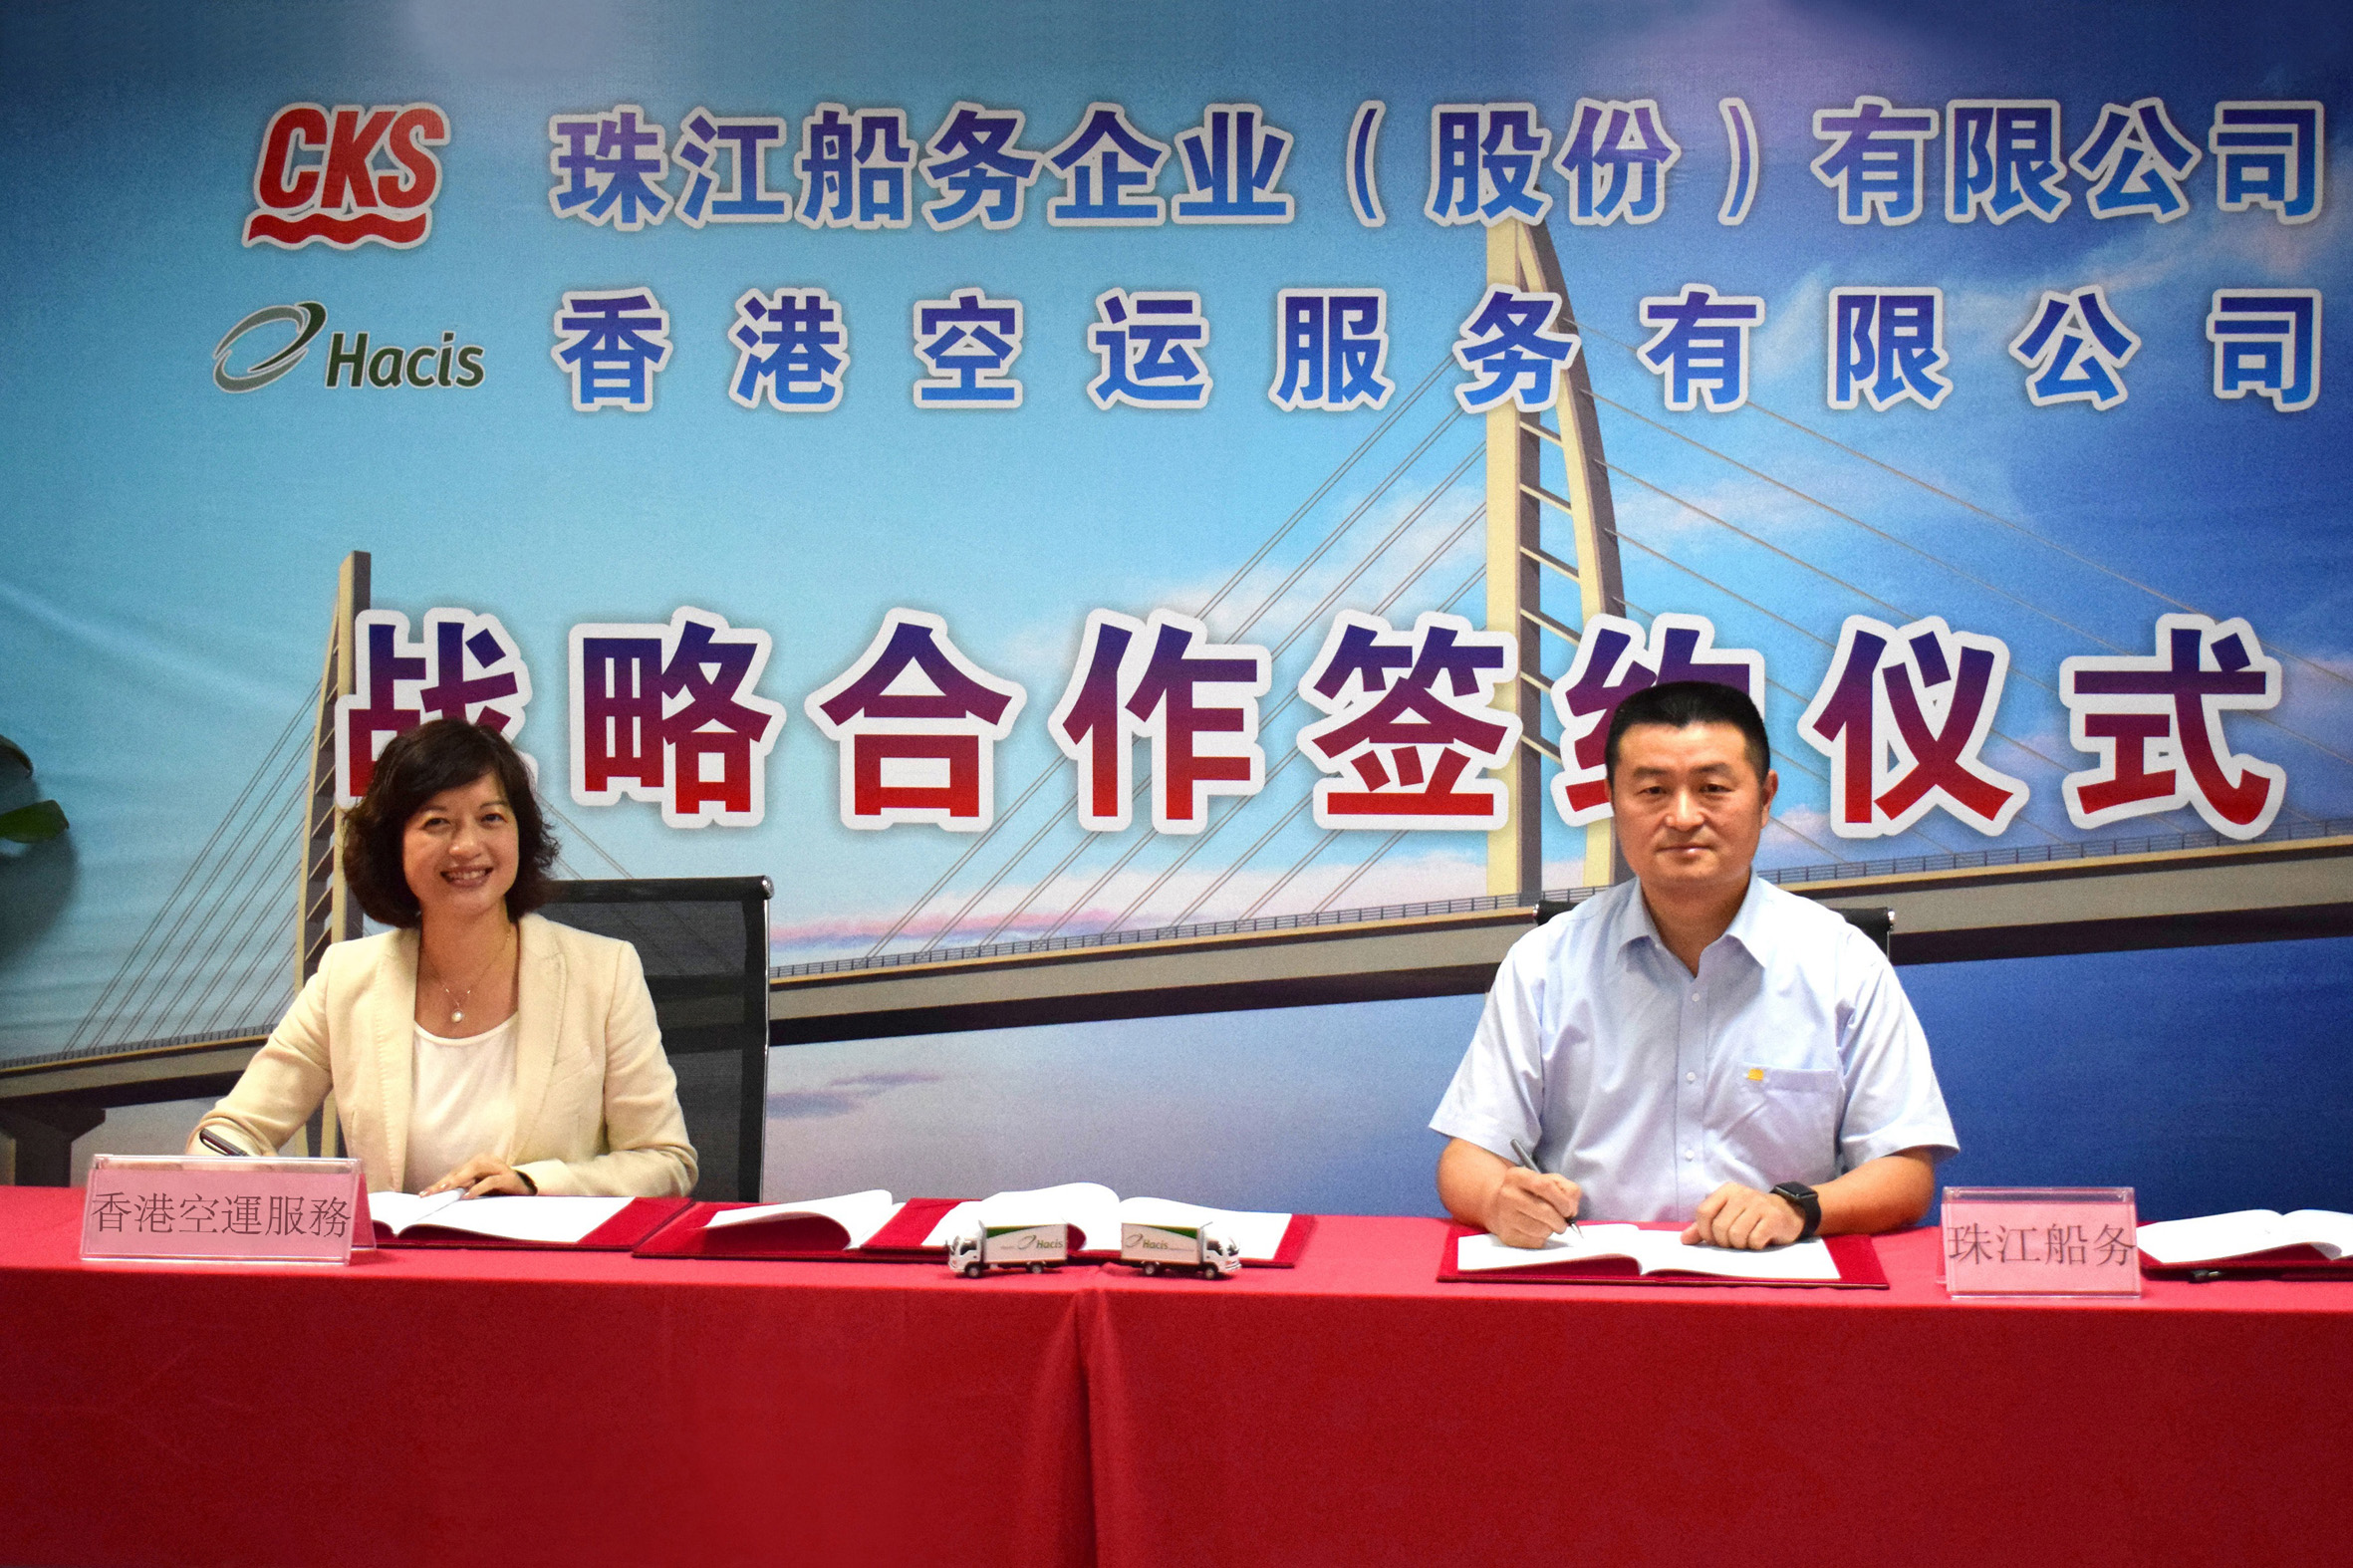 Hacis Managing Director Vivien Lau (left) signs the Agreement with CKS Director & Vice General Manager Roger Cheng